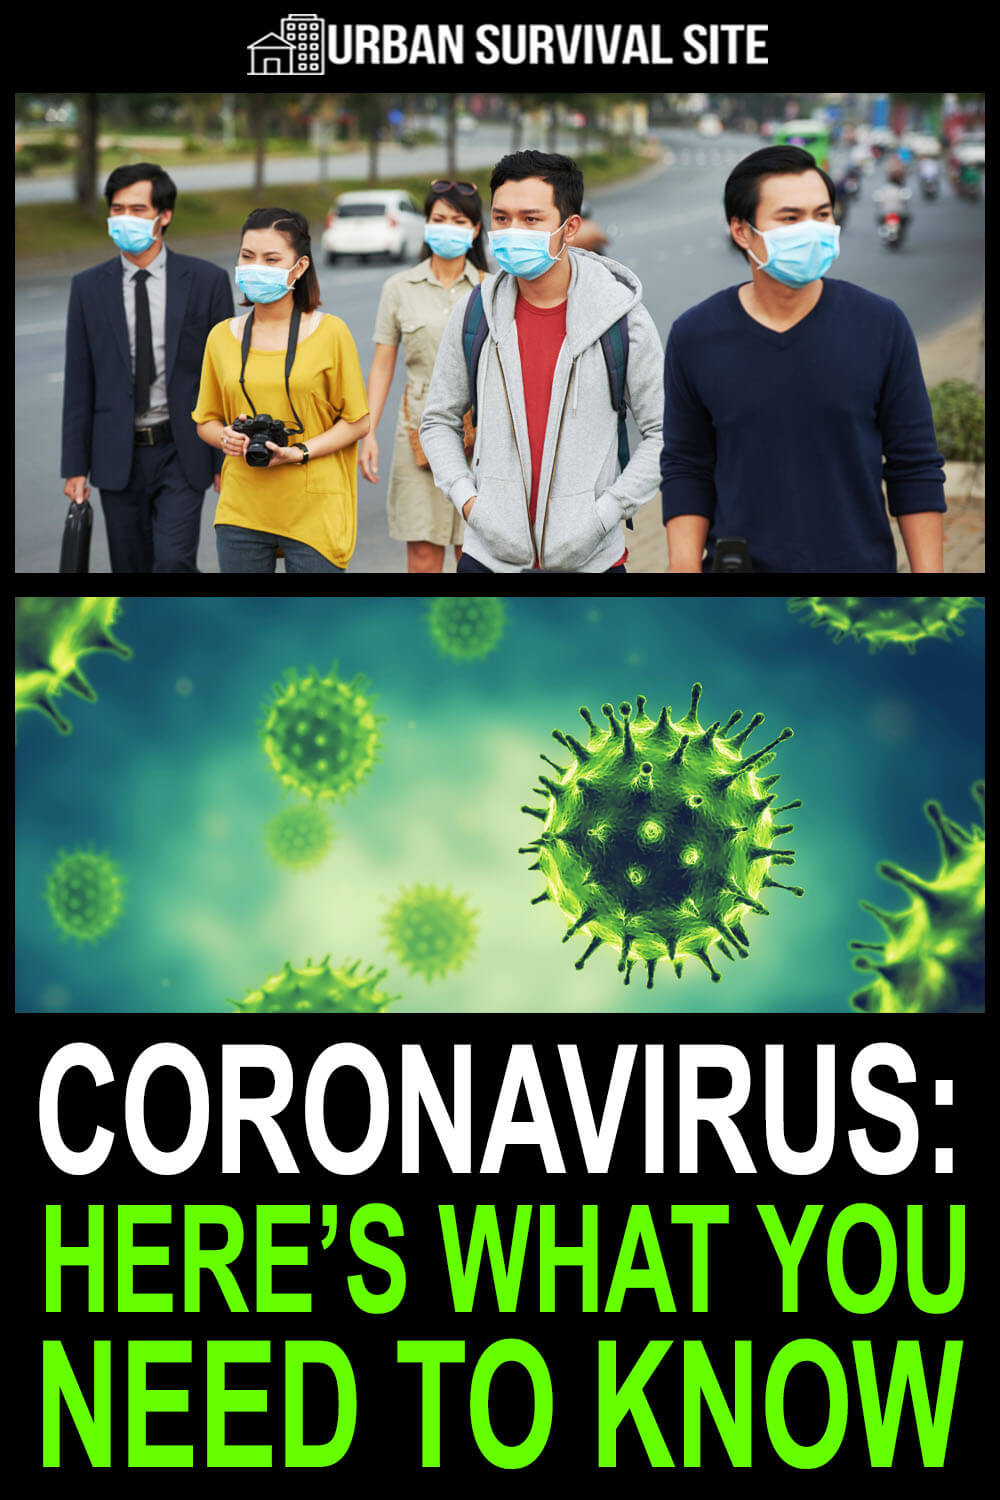 Coronavirus: Here's What You Need To Know